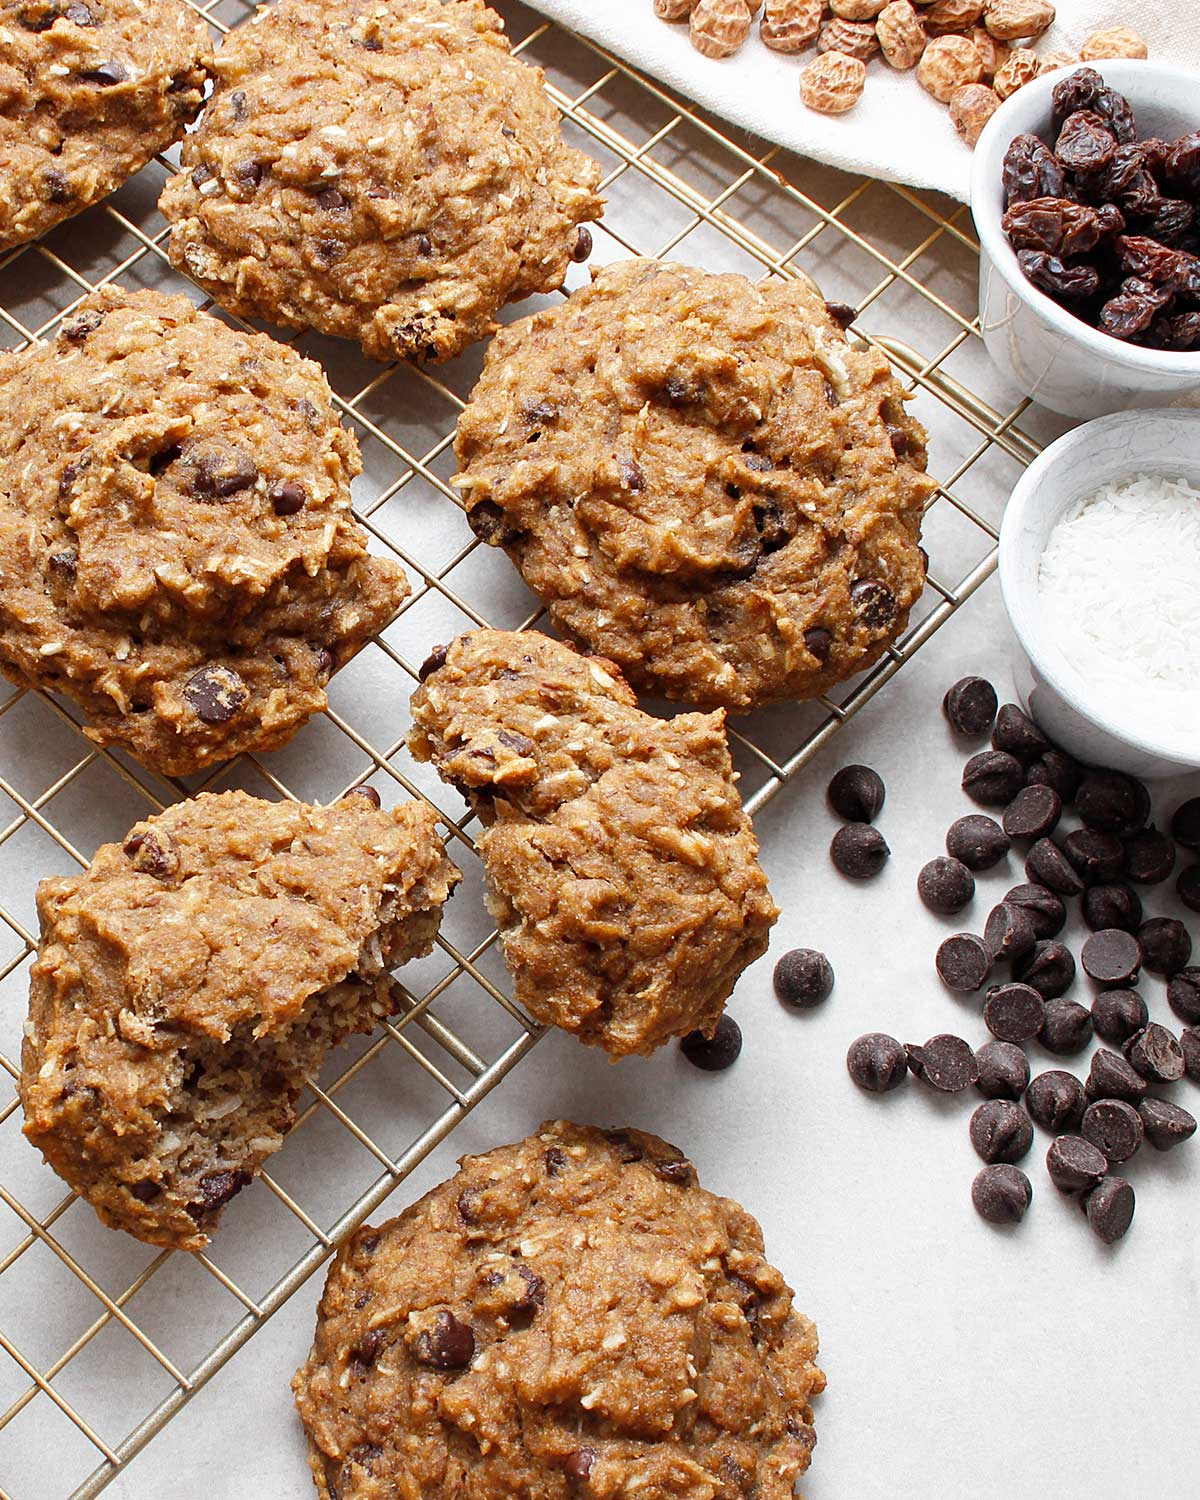 Grain-free banana bread cookies with allergen-friendly chocolate chips cooling on wire rack.